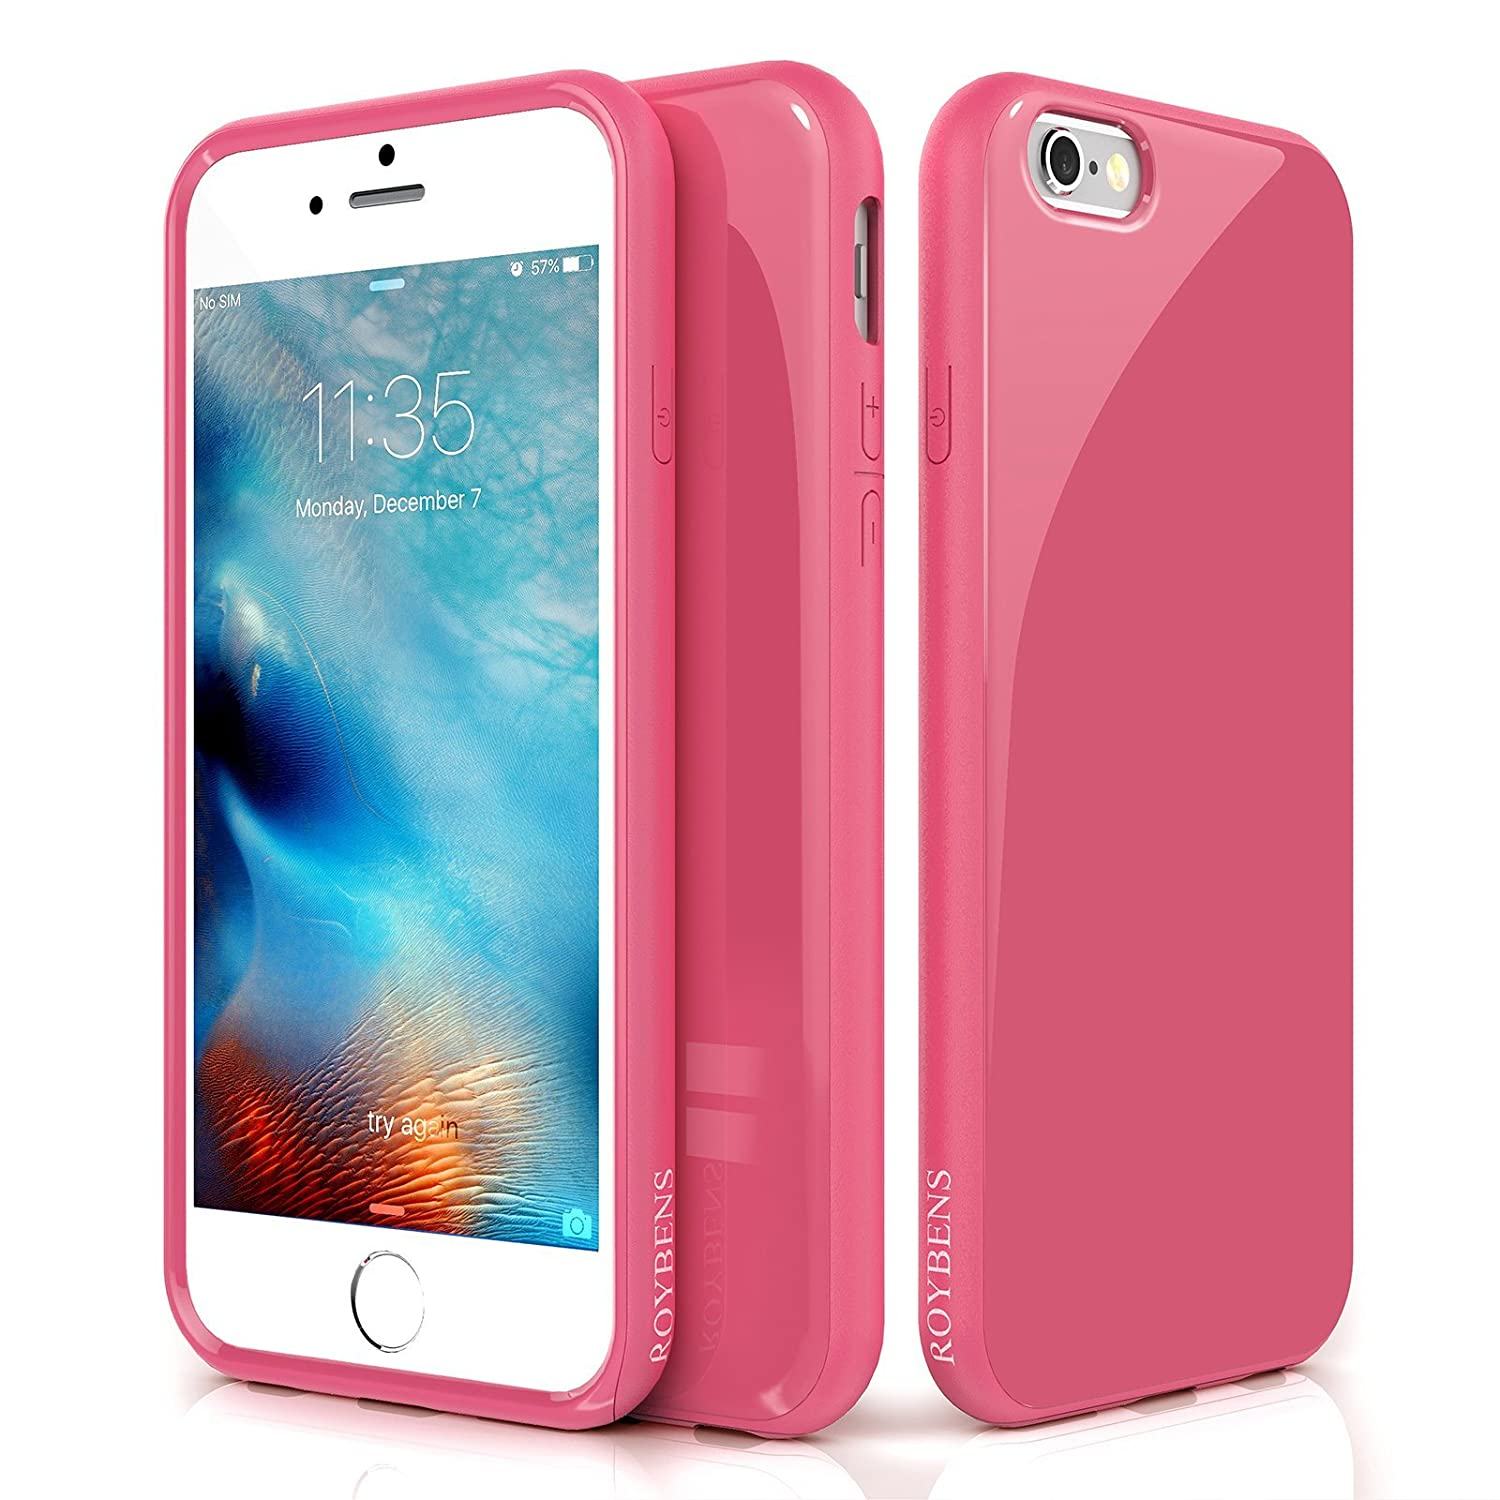 online store e525b 679e9 iPhone 6s Case, Drop Protection Silicone Slim Fit Armor, ROYBENS Dual Layer  Hard PC+ Soft TPU Protective Hybrid Design Shockproof Bumper Rubber Thin ...